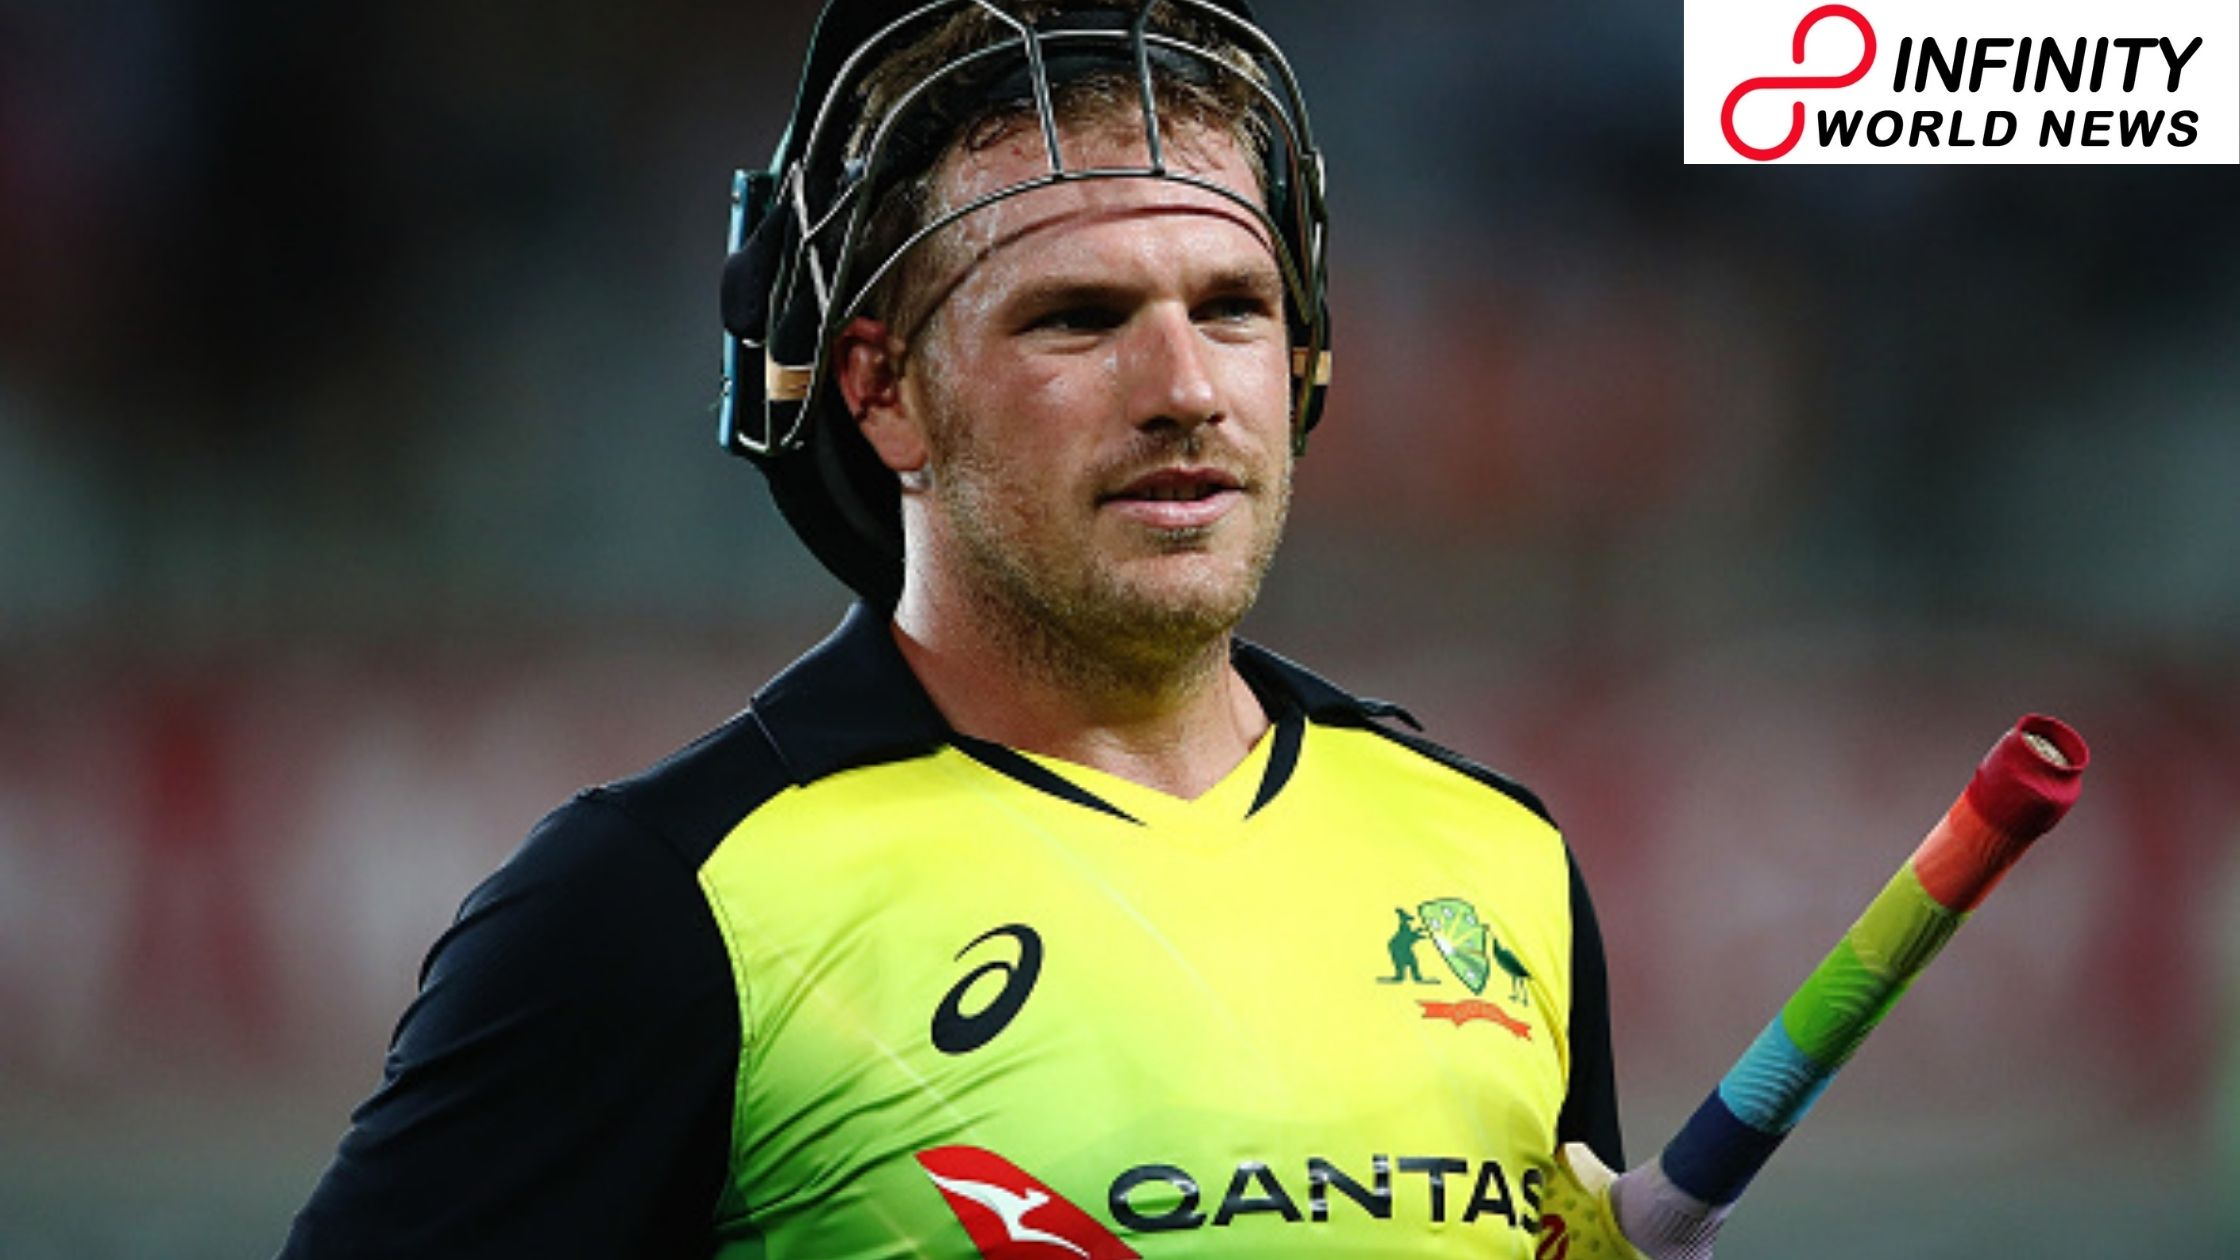 Australia versus India, first ODI: Aaron Finch Becomes Second Fastest Australian To Score 5,000 Runs In ODIs